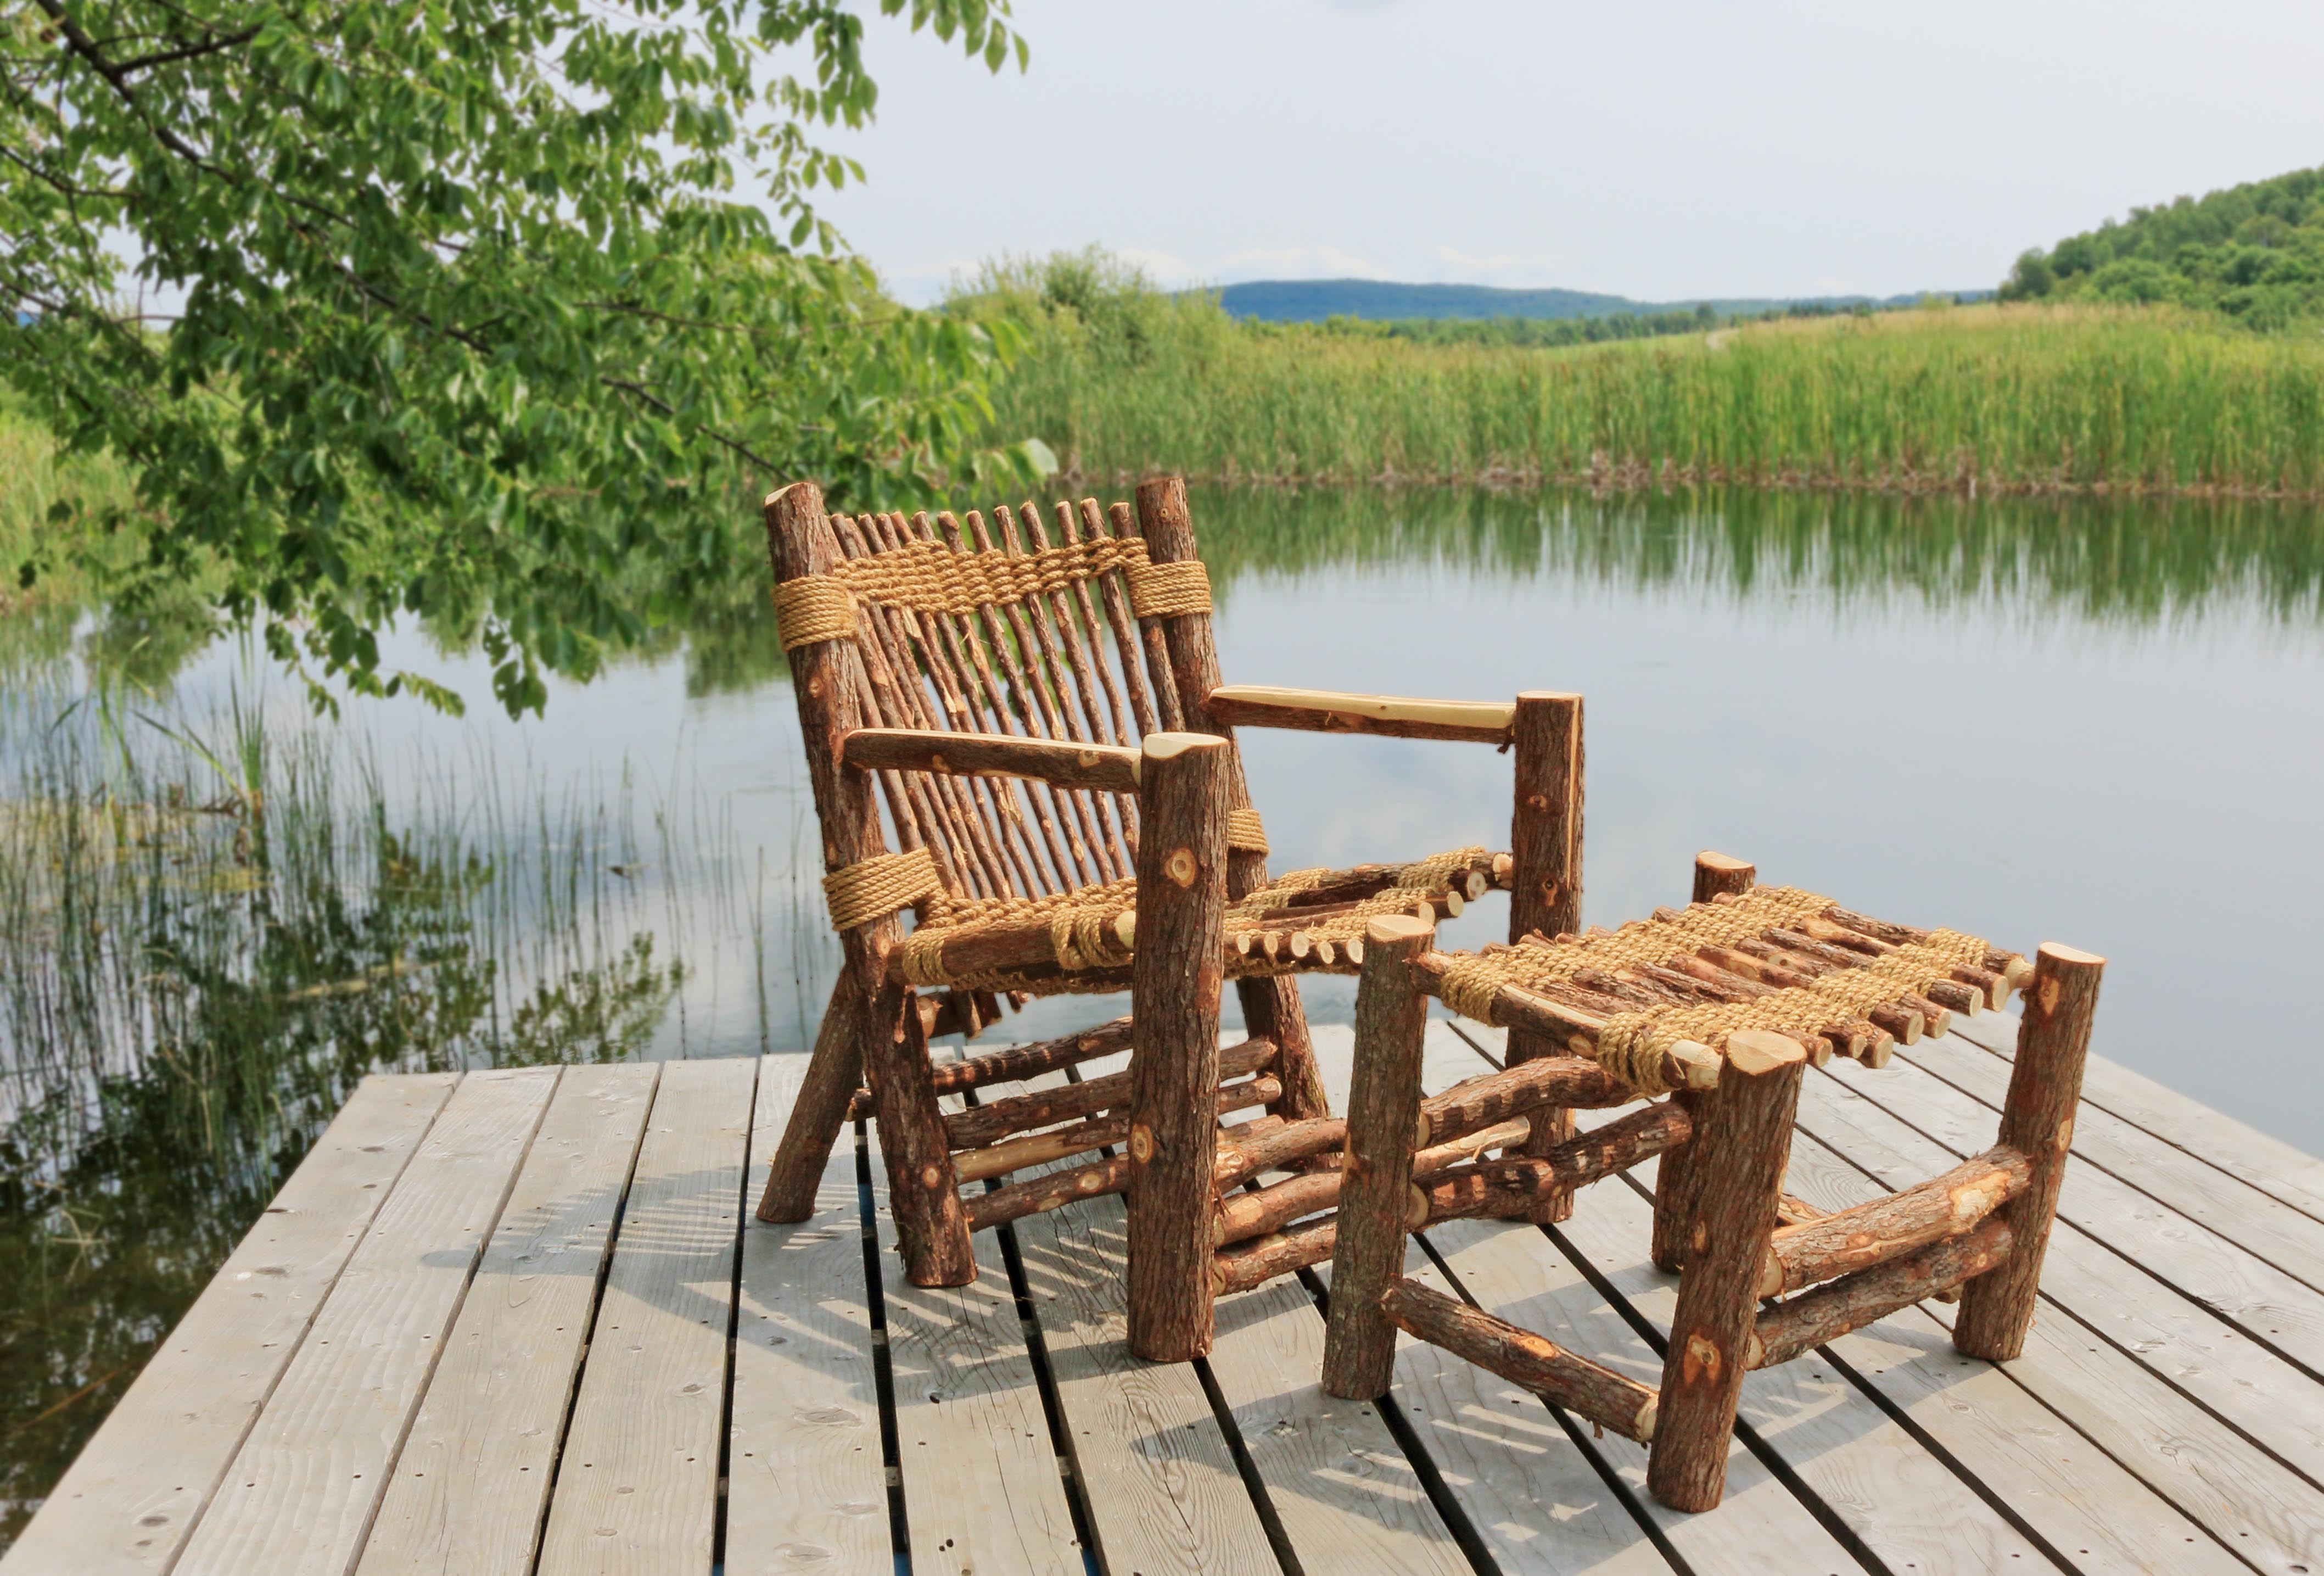 Vermont Cedar Chair Co uses entire tree in outdoor